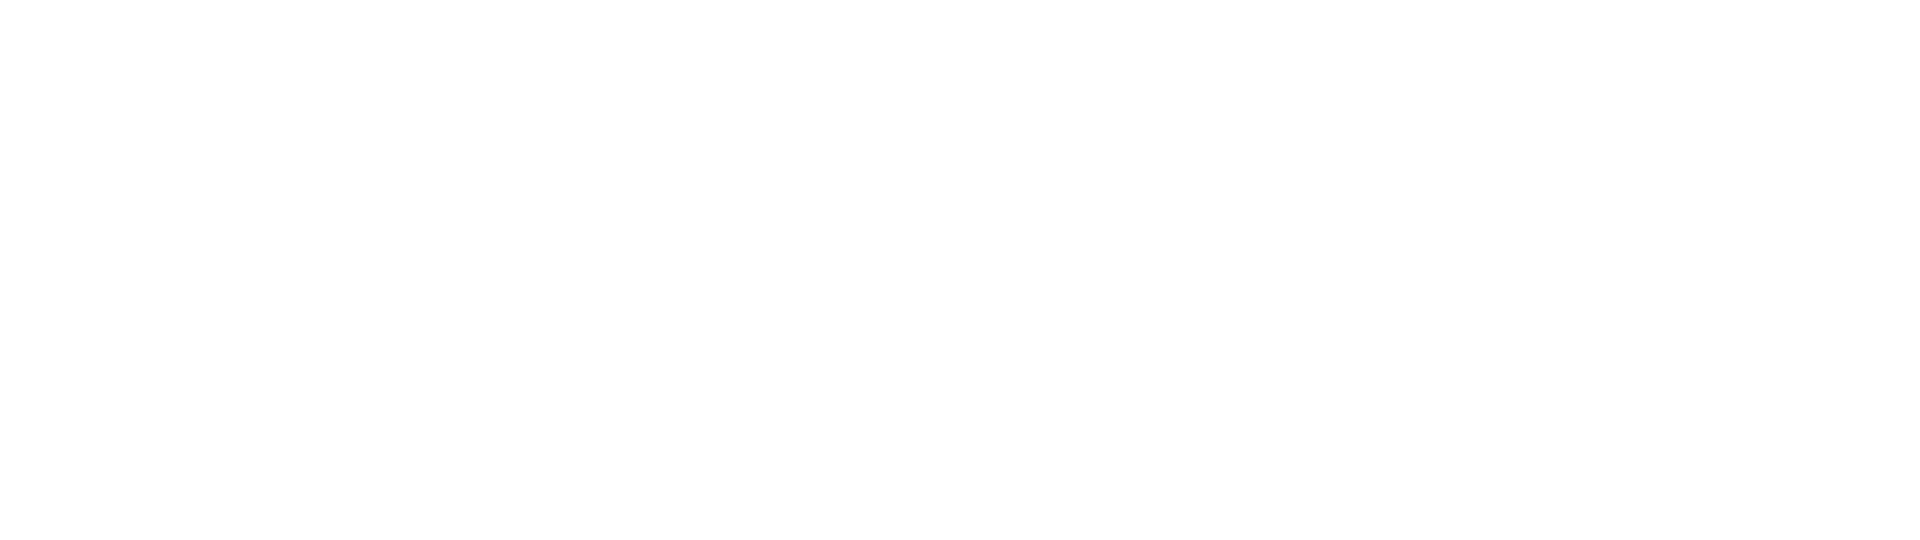 Crafthaus_and_Indiegogo_1920x540